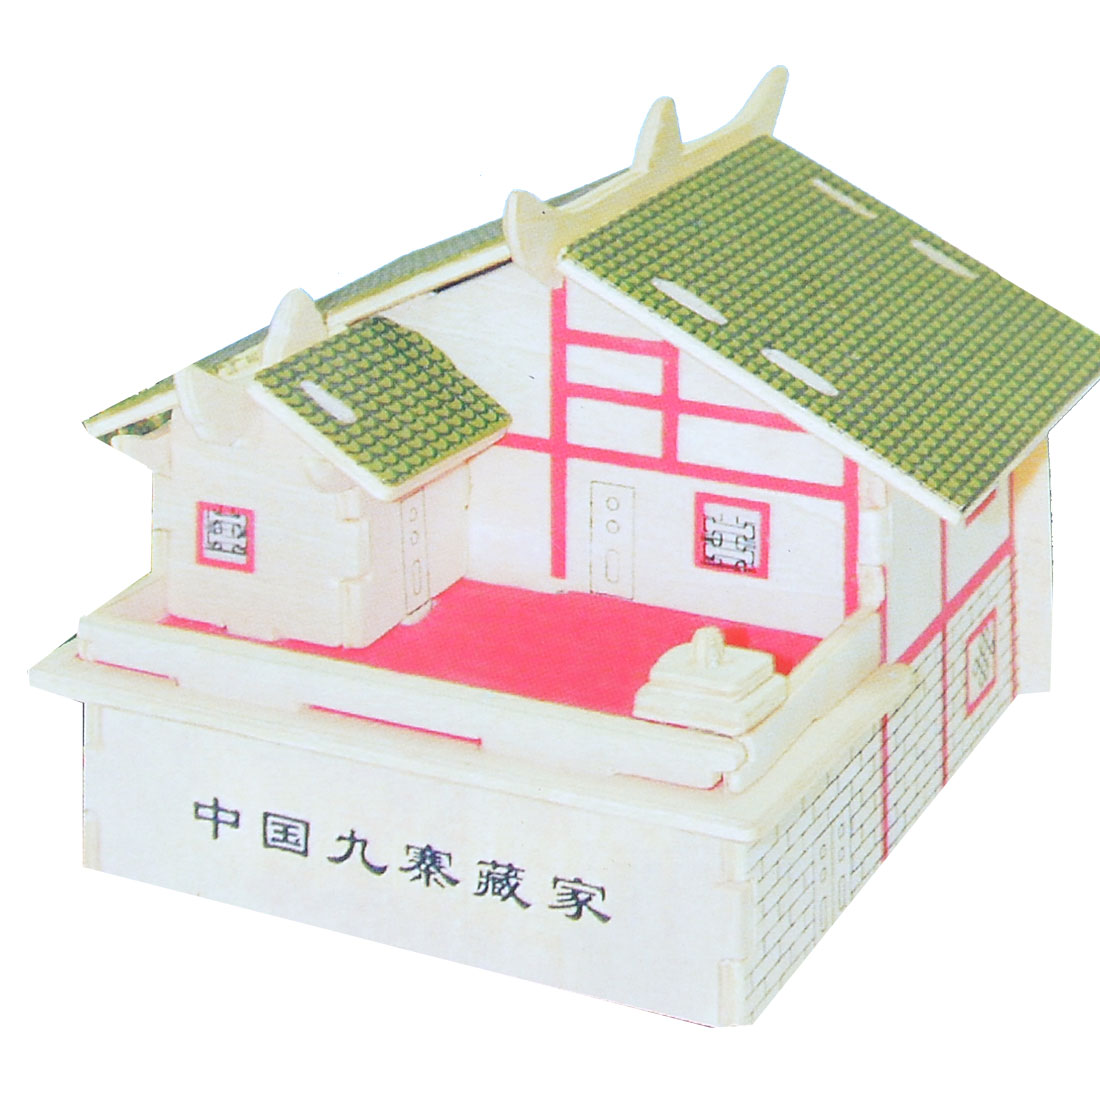 Children DIY 3D Puzzle Jiu Zhai Tibetan Family Wooden Toy Woodcraft Construction Kit